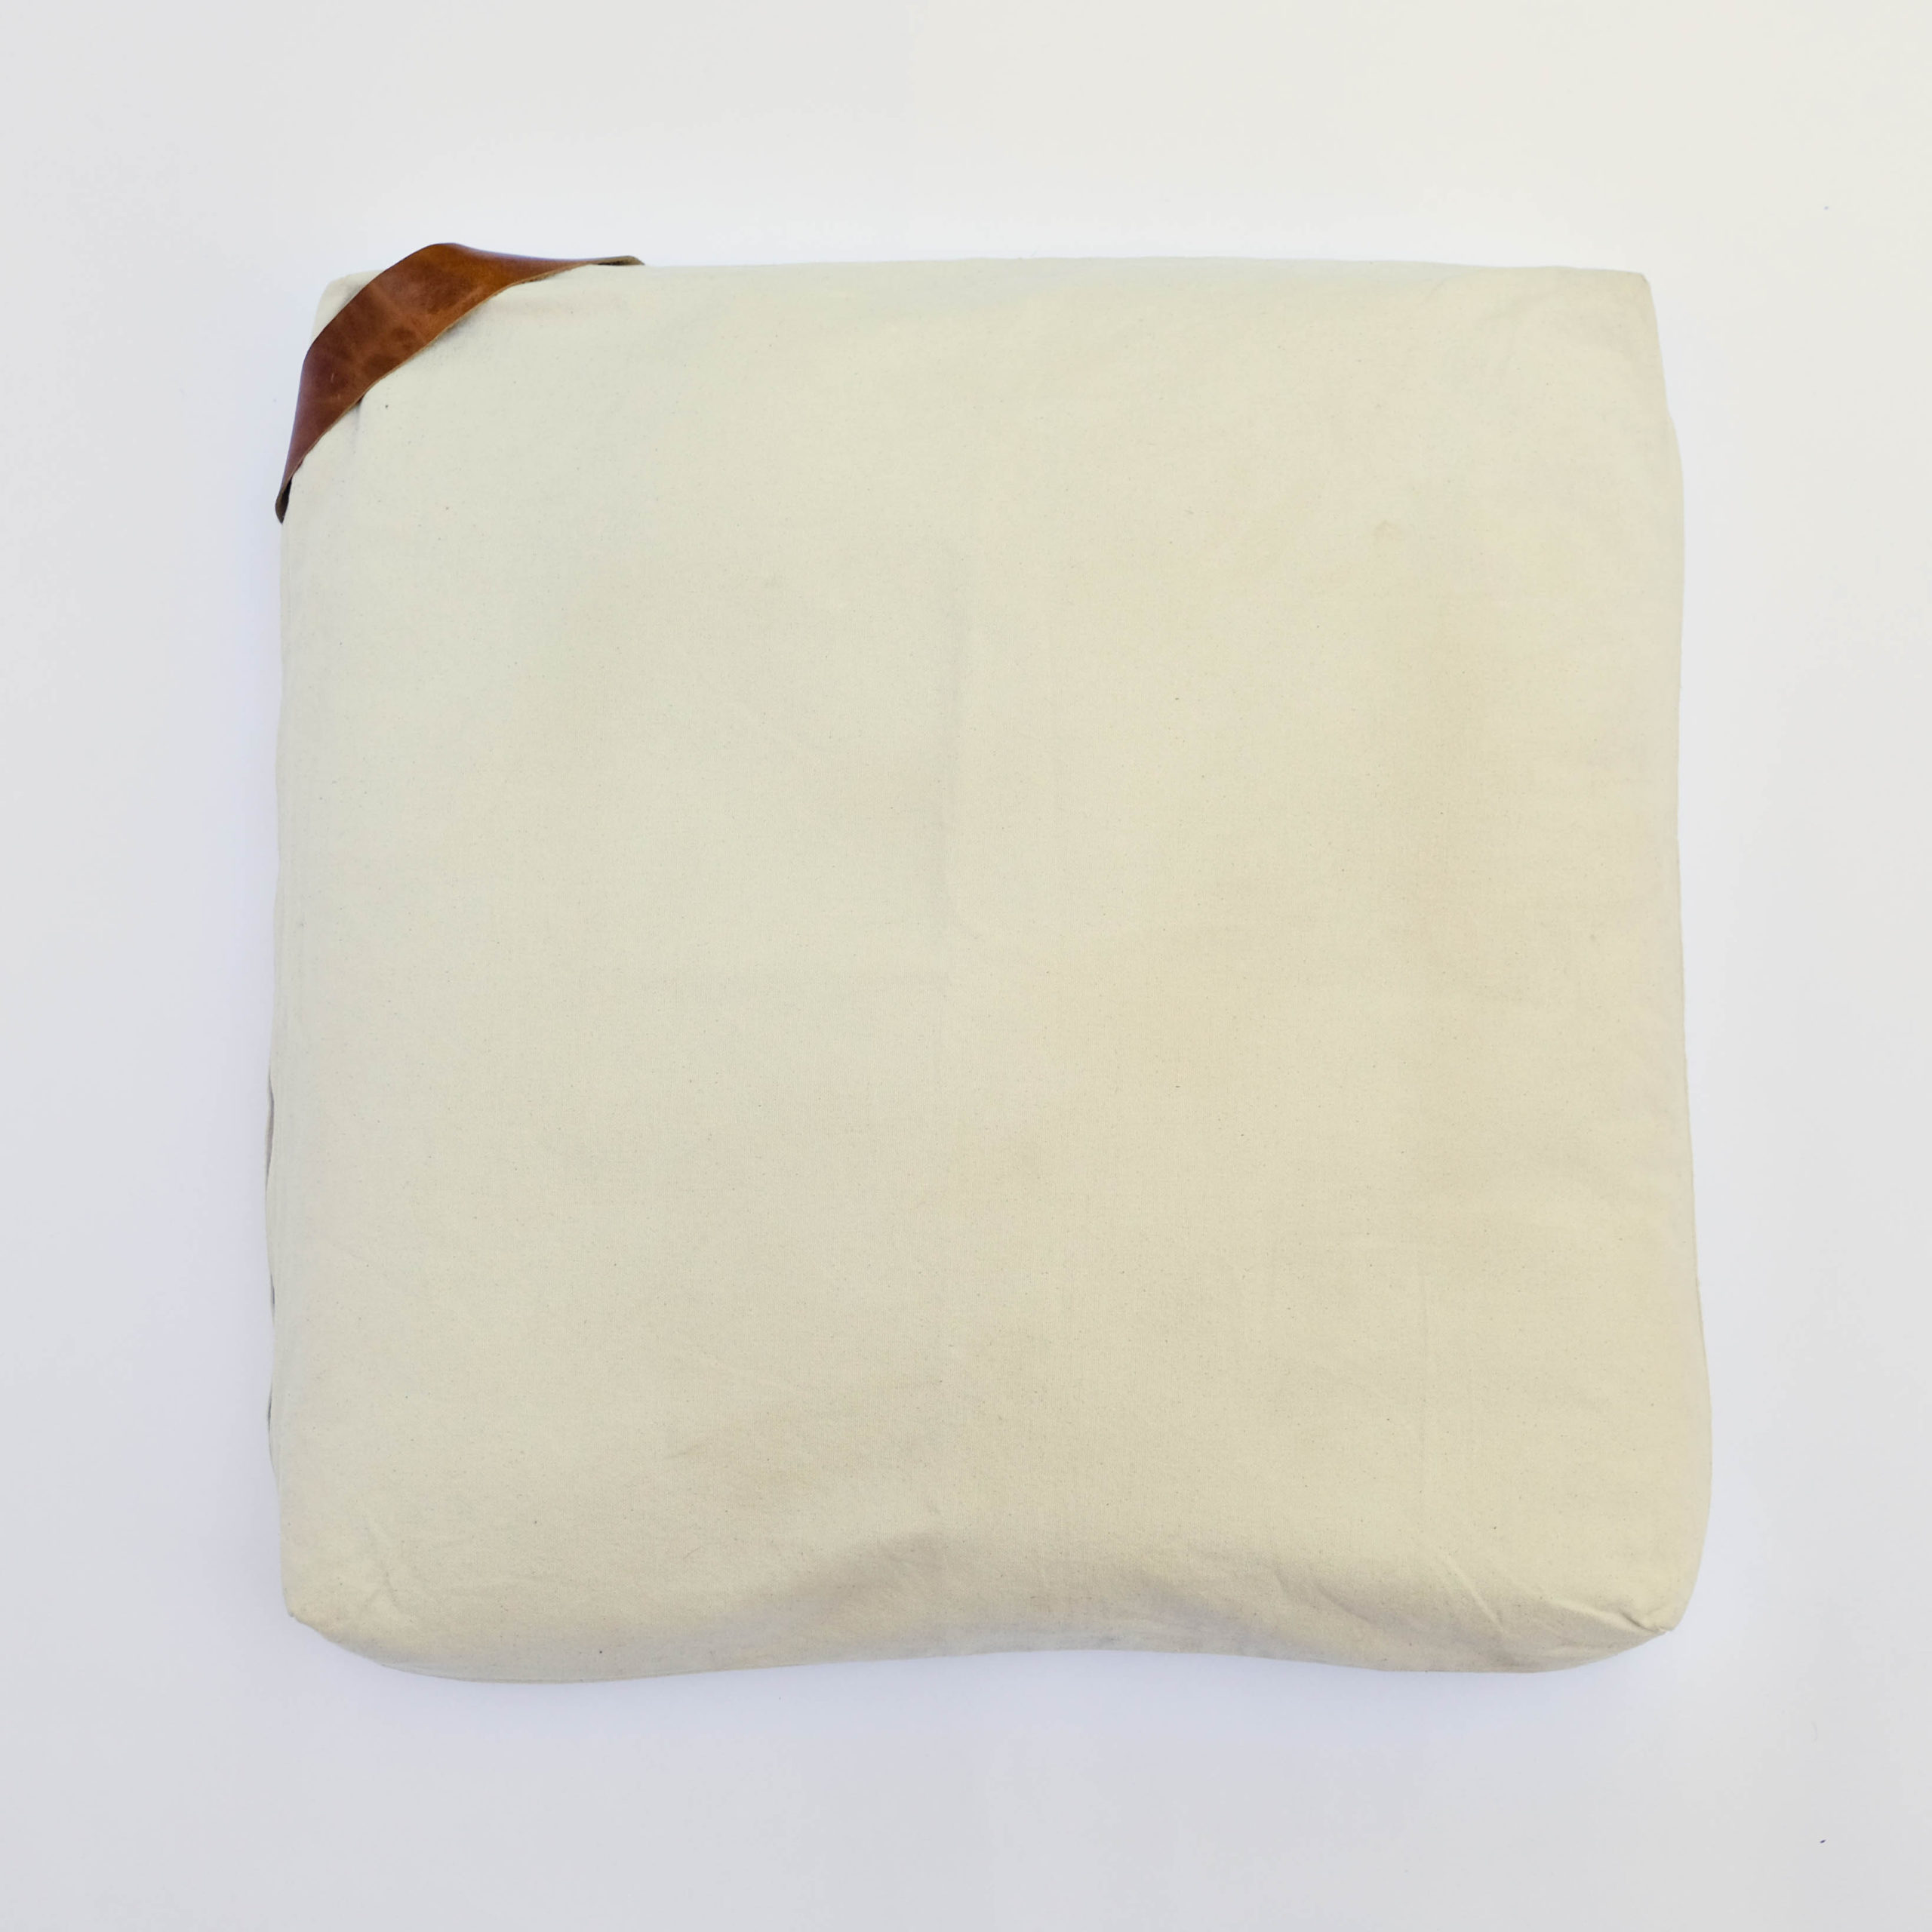 floor cushion naturally dyed sustainable organic cotton borrego sand cognac front view